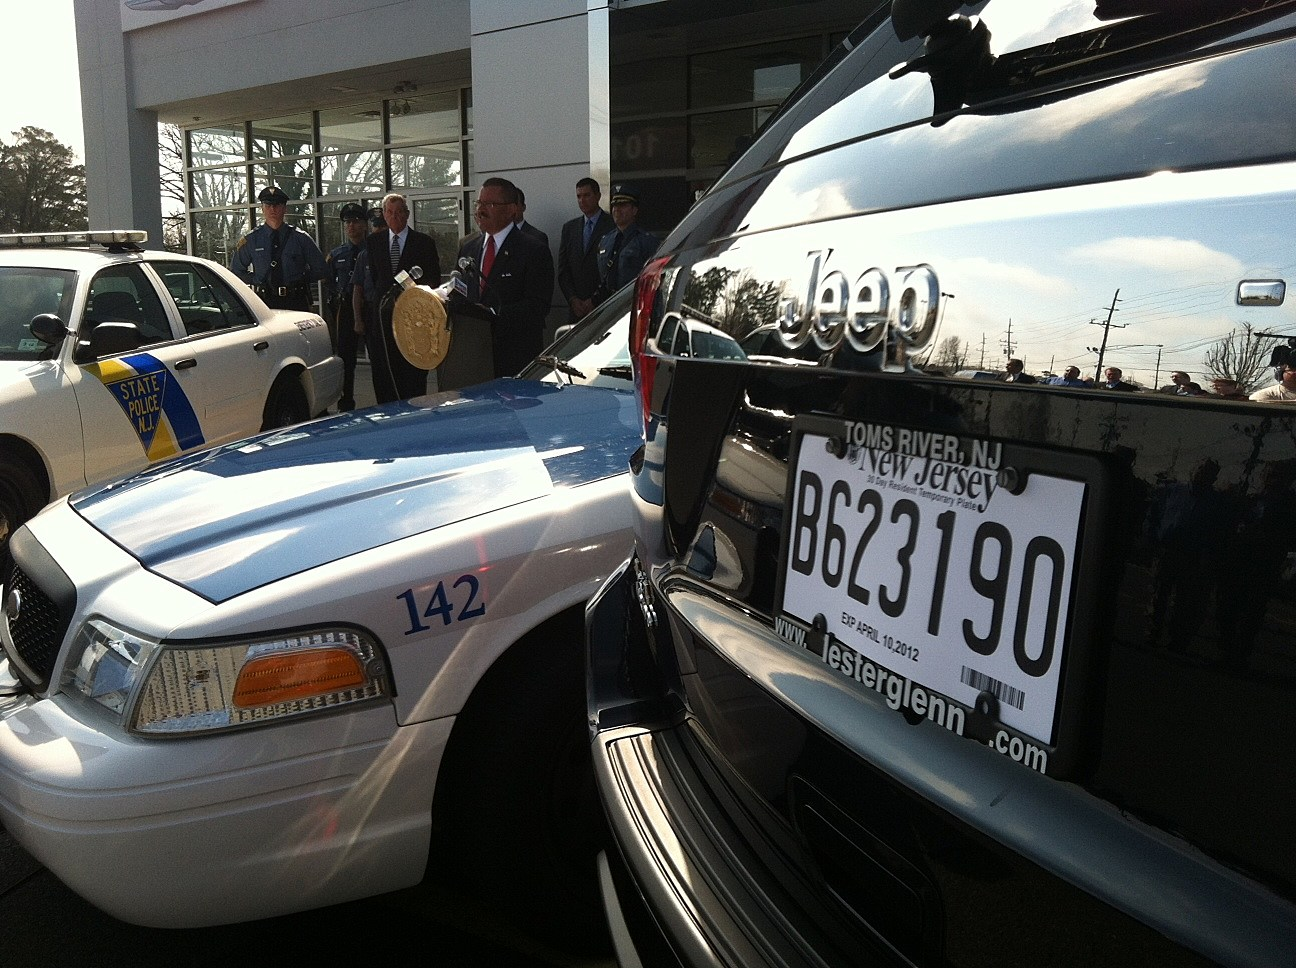 Temporary License Plates Get A Major Facelift